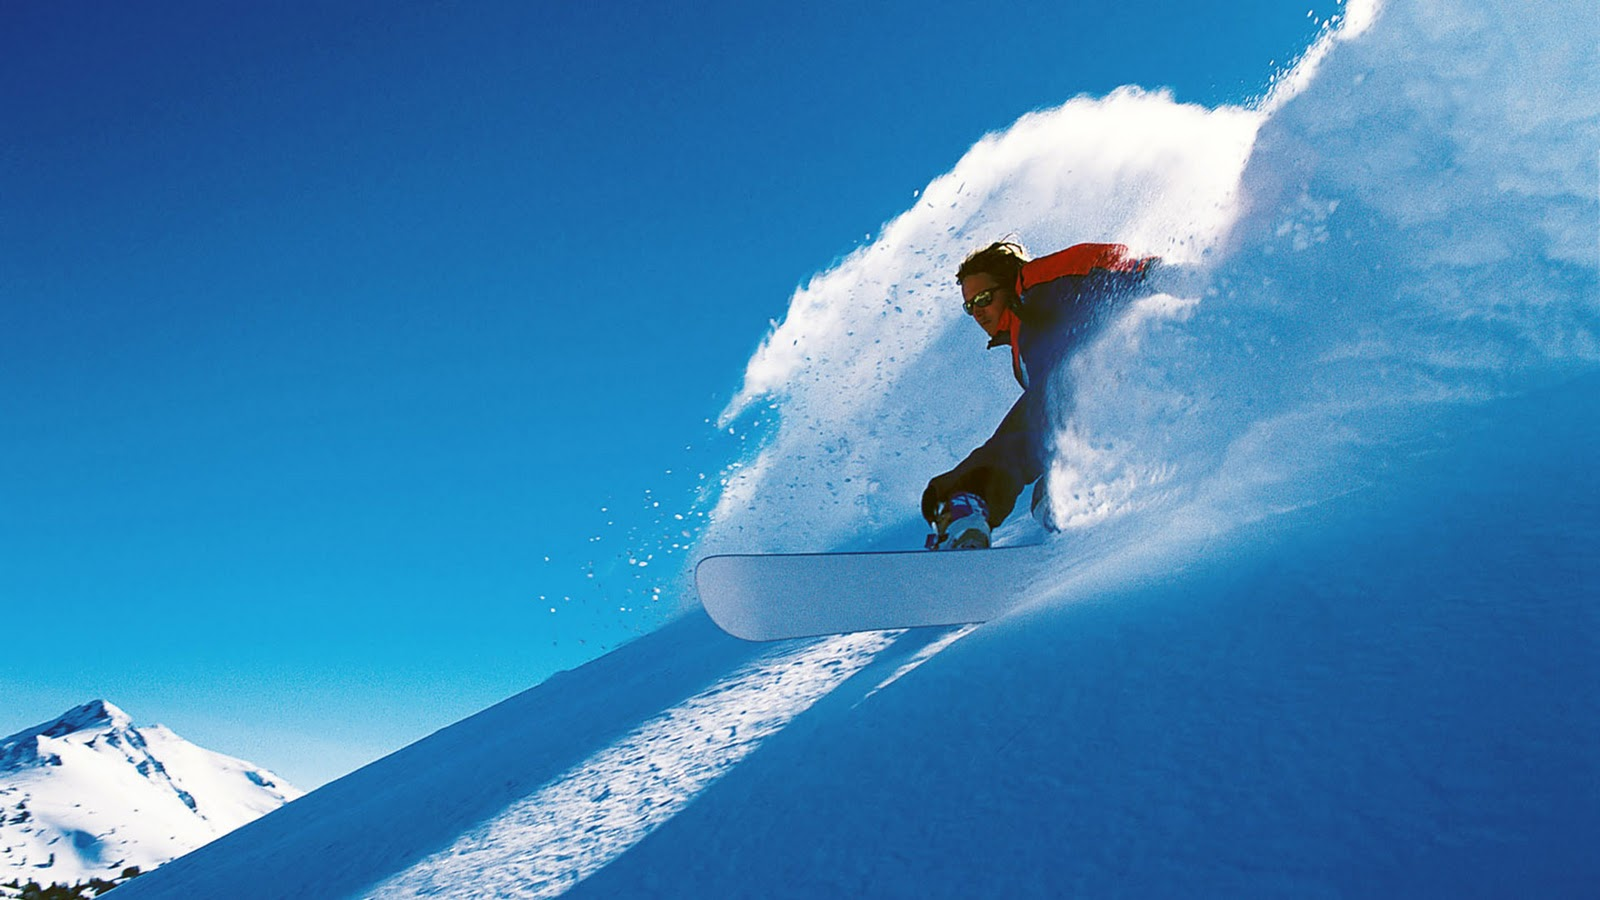 1600x900 - Snowboarding Wallpapers 23